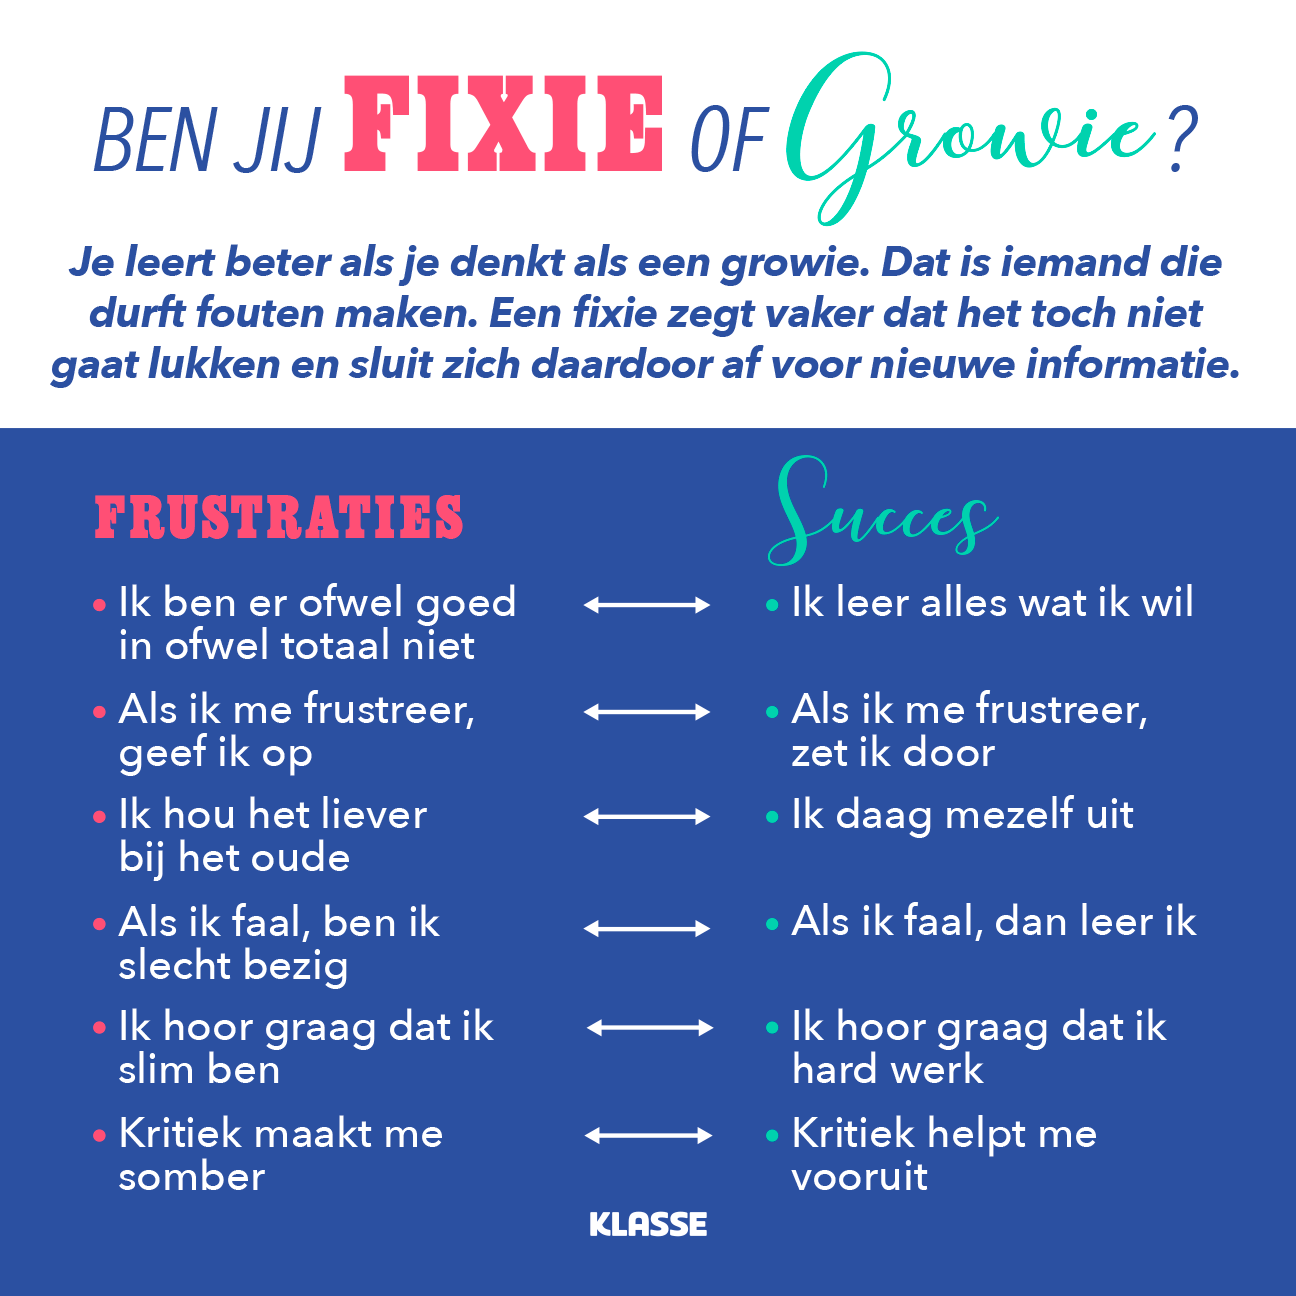 Ben jij fixie of growie?